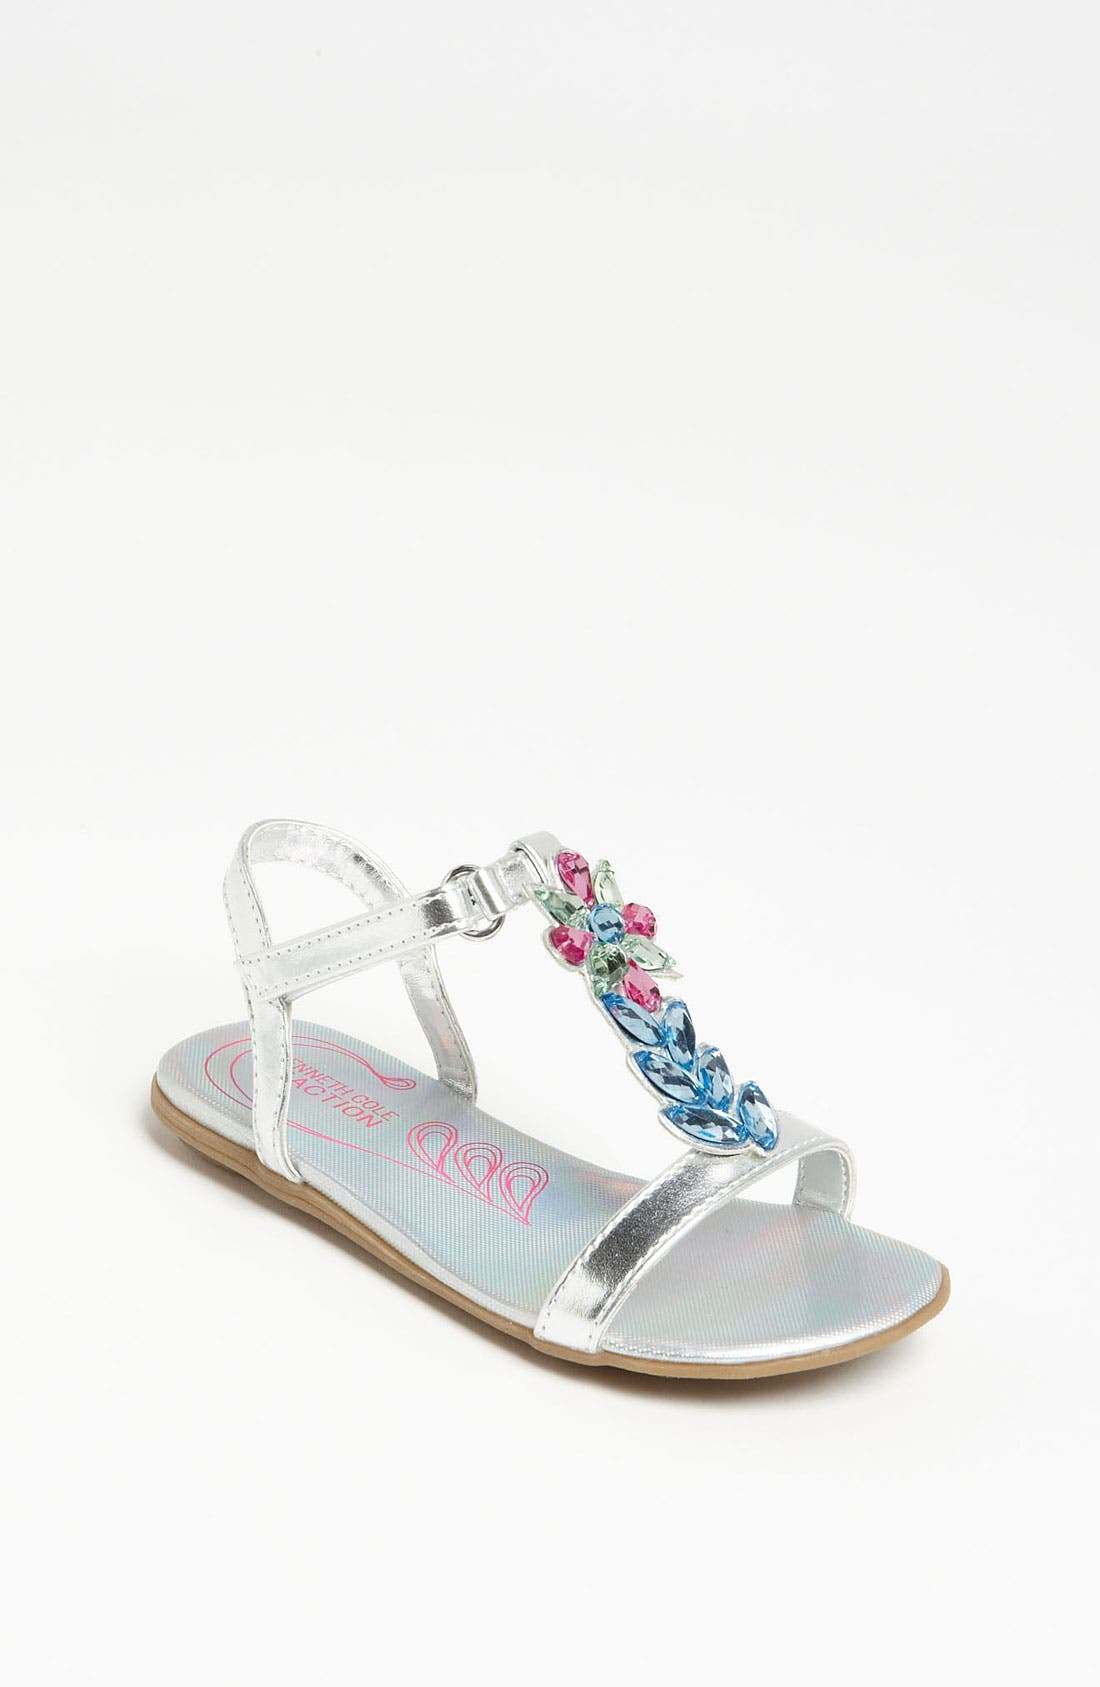 Main Image - Kenneth Cole Reaction 'Pick A Bright' Sandal (Walker & Toddler)